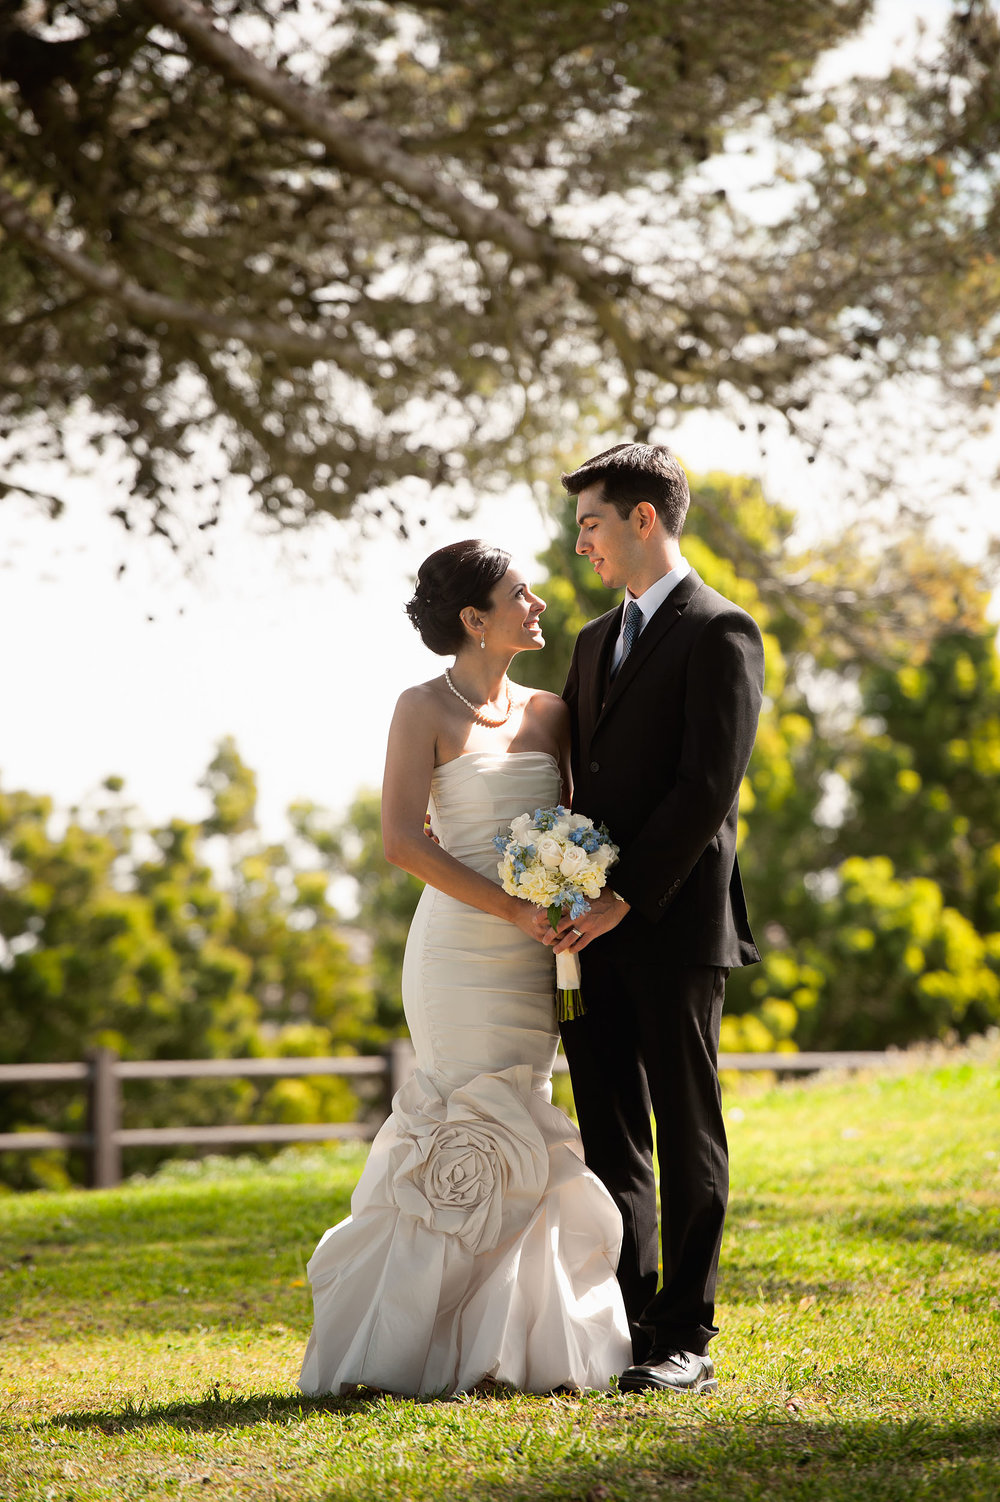 Bride and groom at Del Cerro Park in Rancho Palos Verdes.